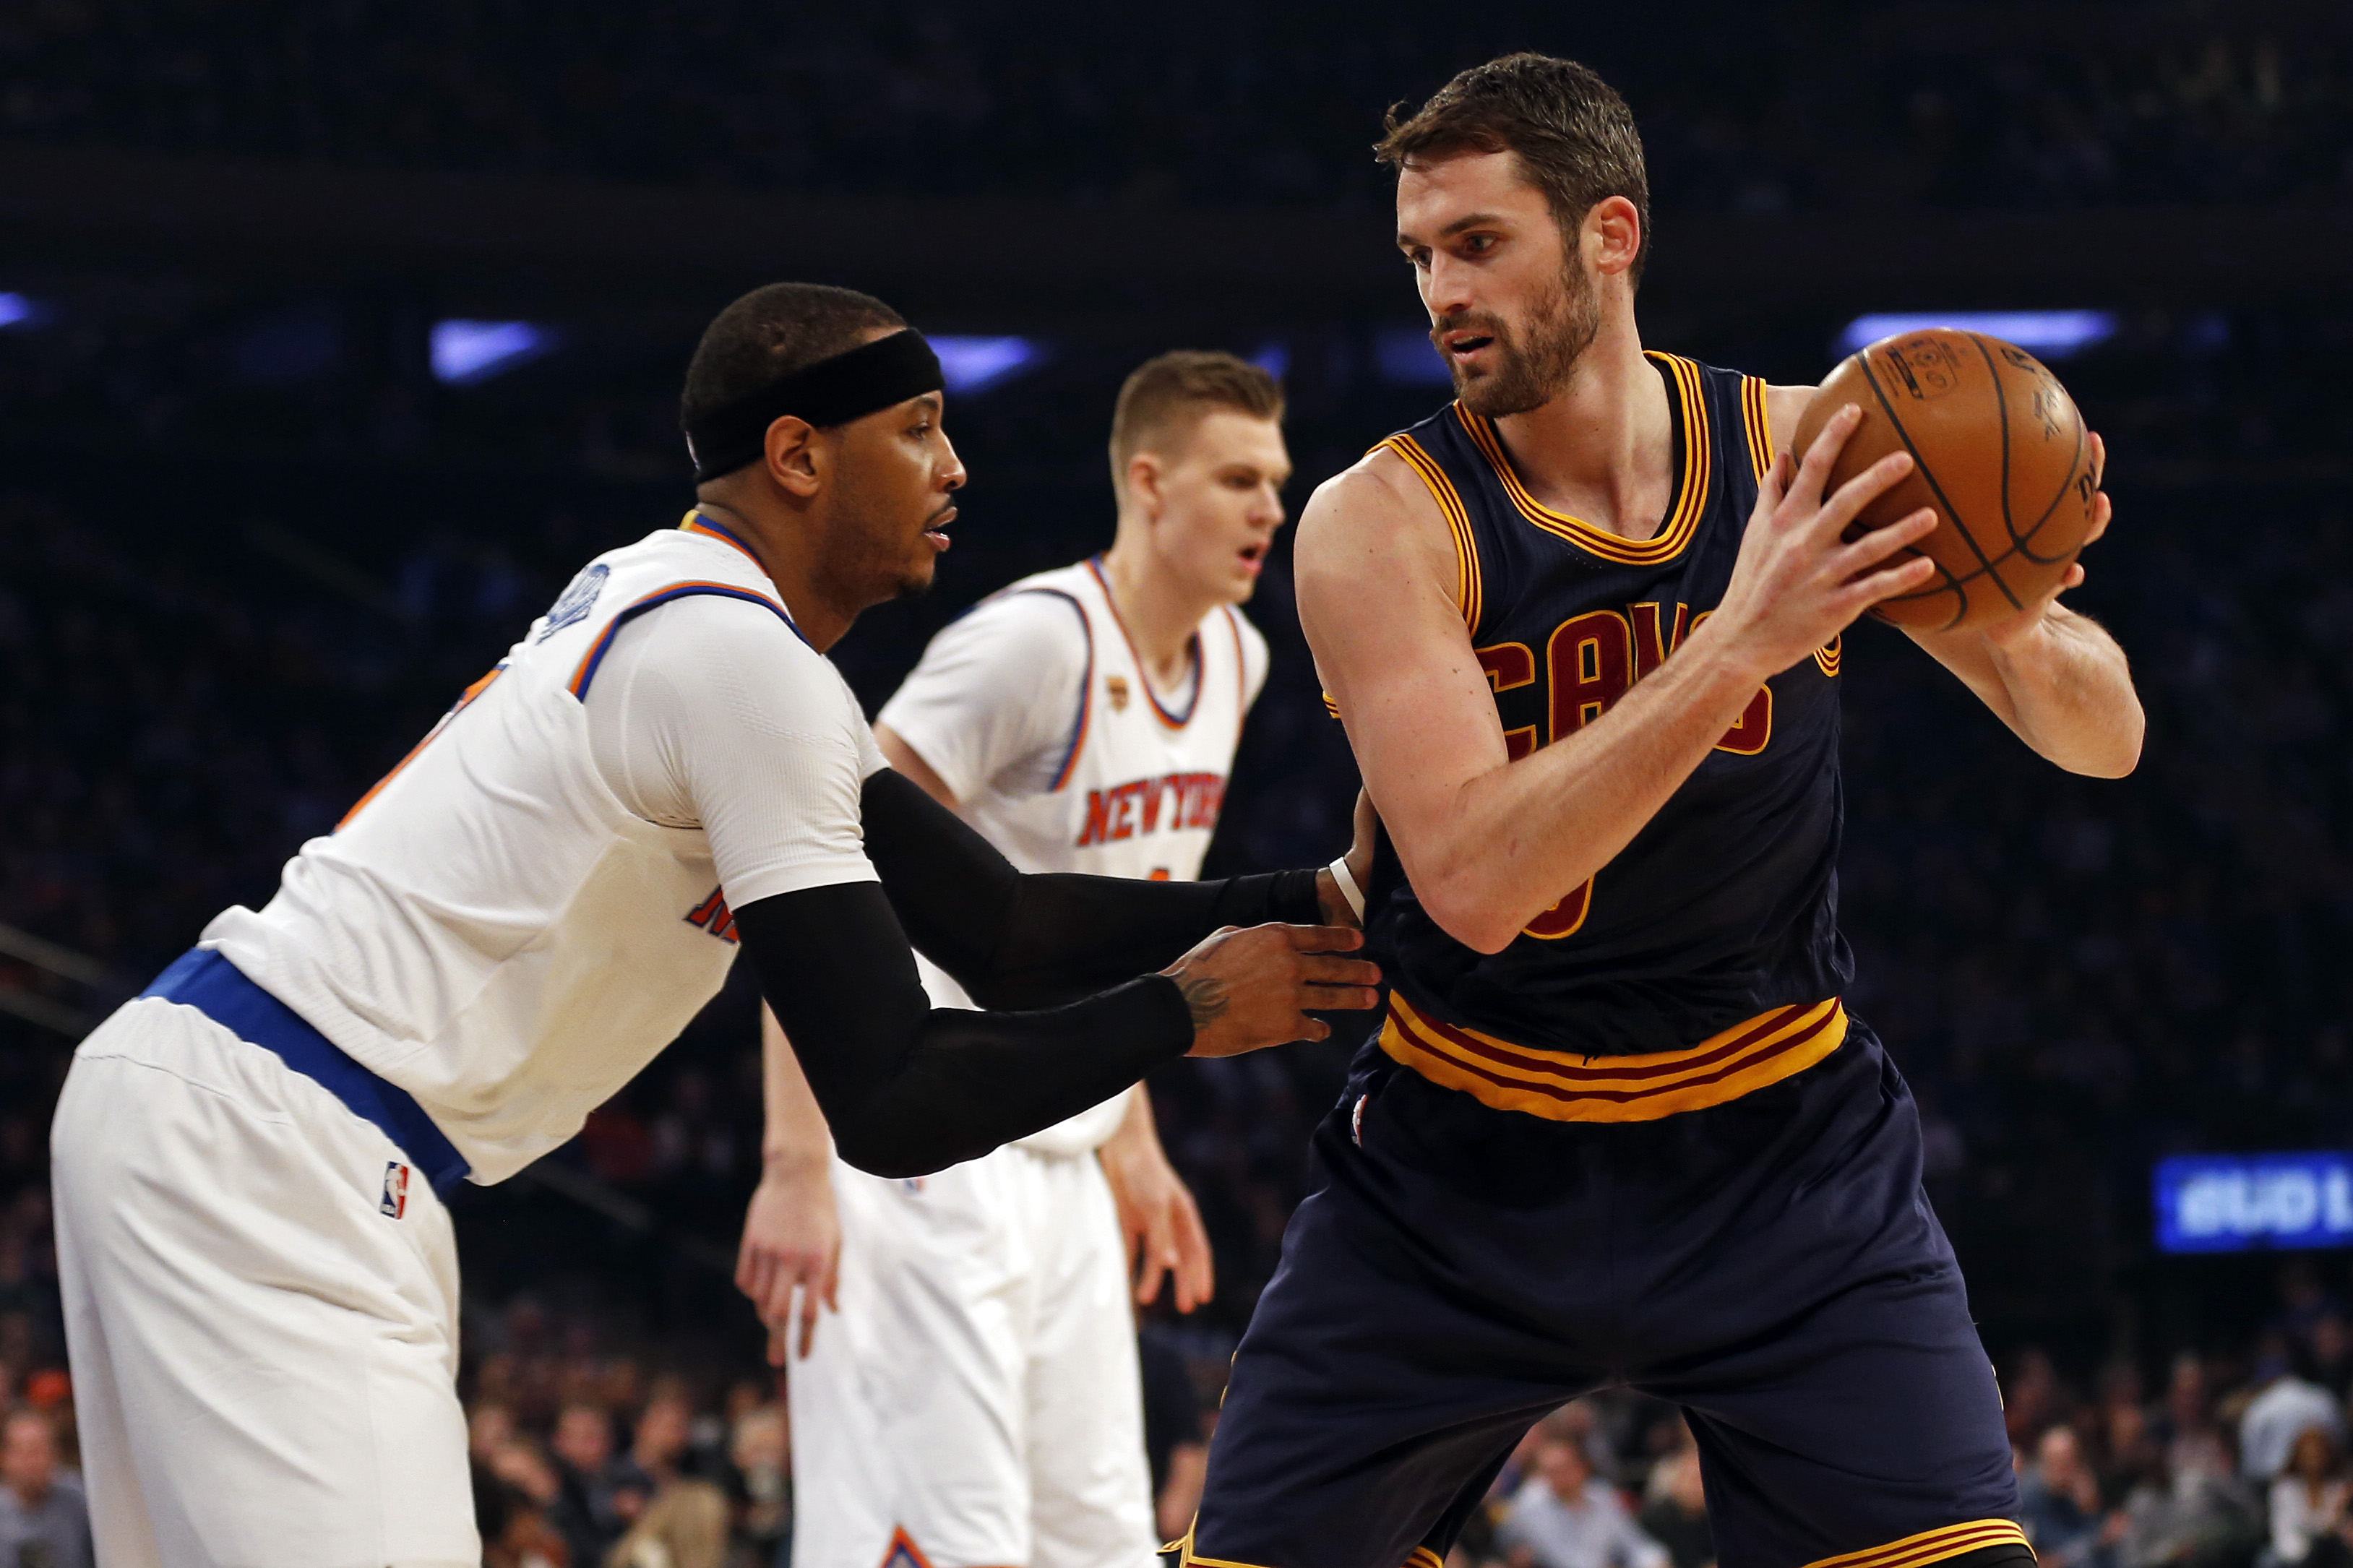 9859802-nba-cleveland-cavaliers-at-new-york-knicks